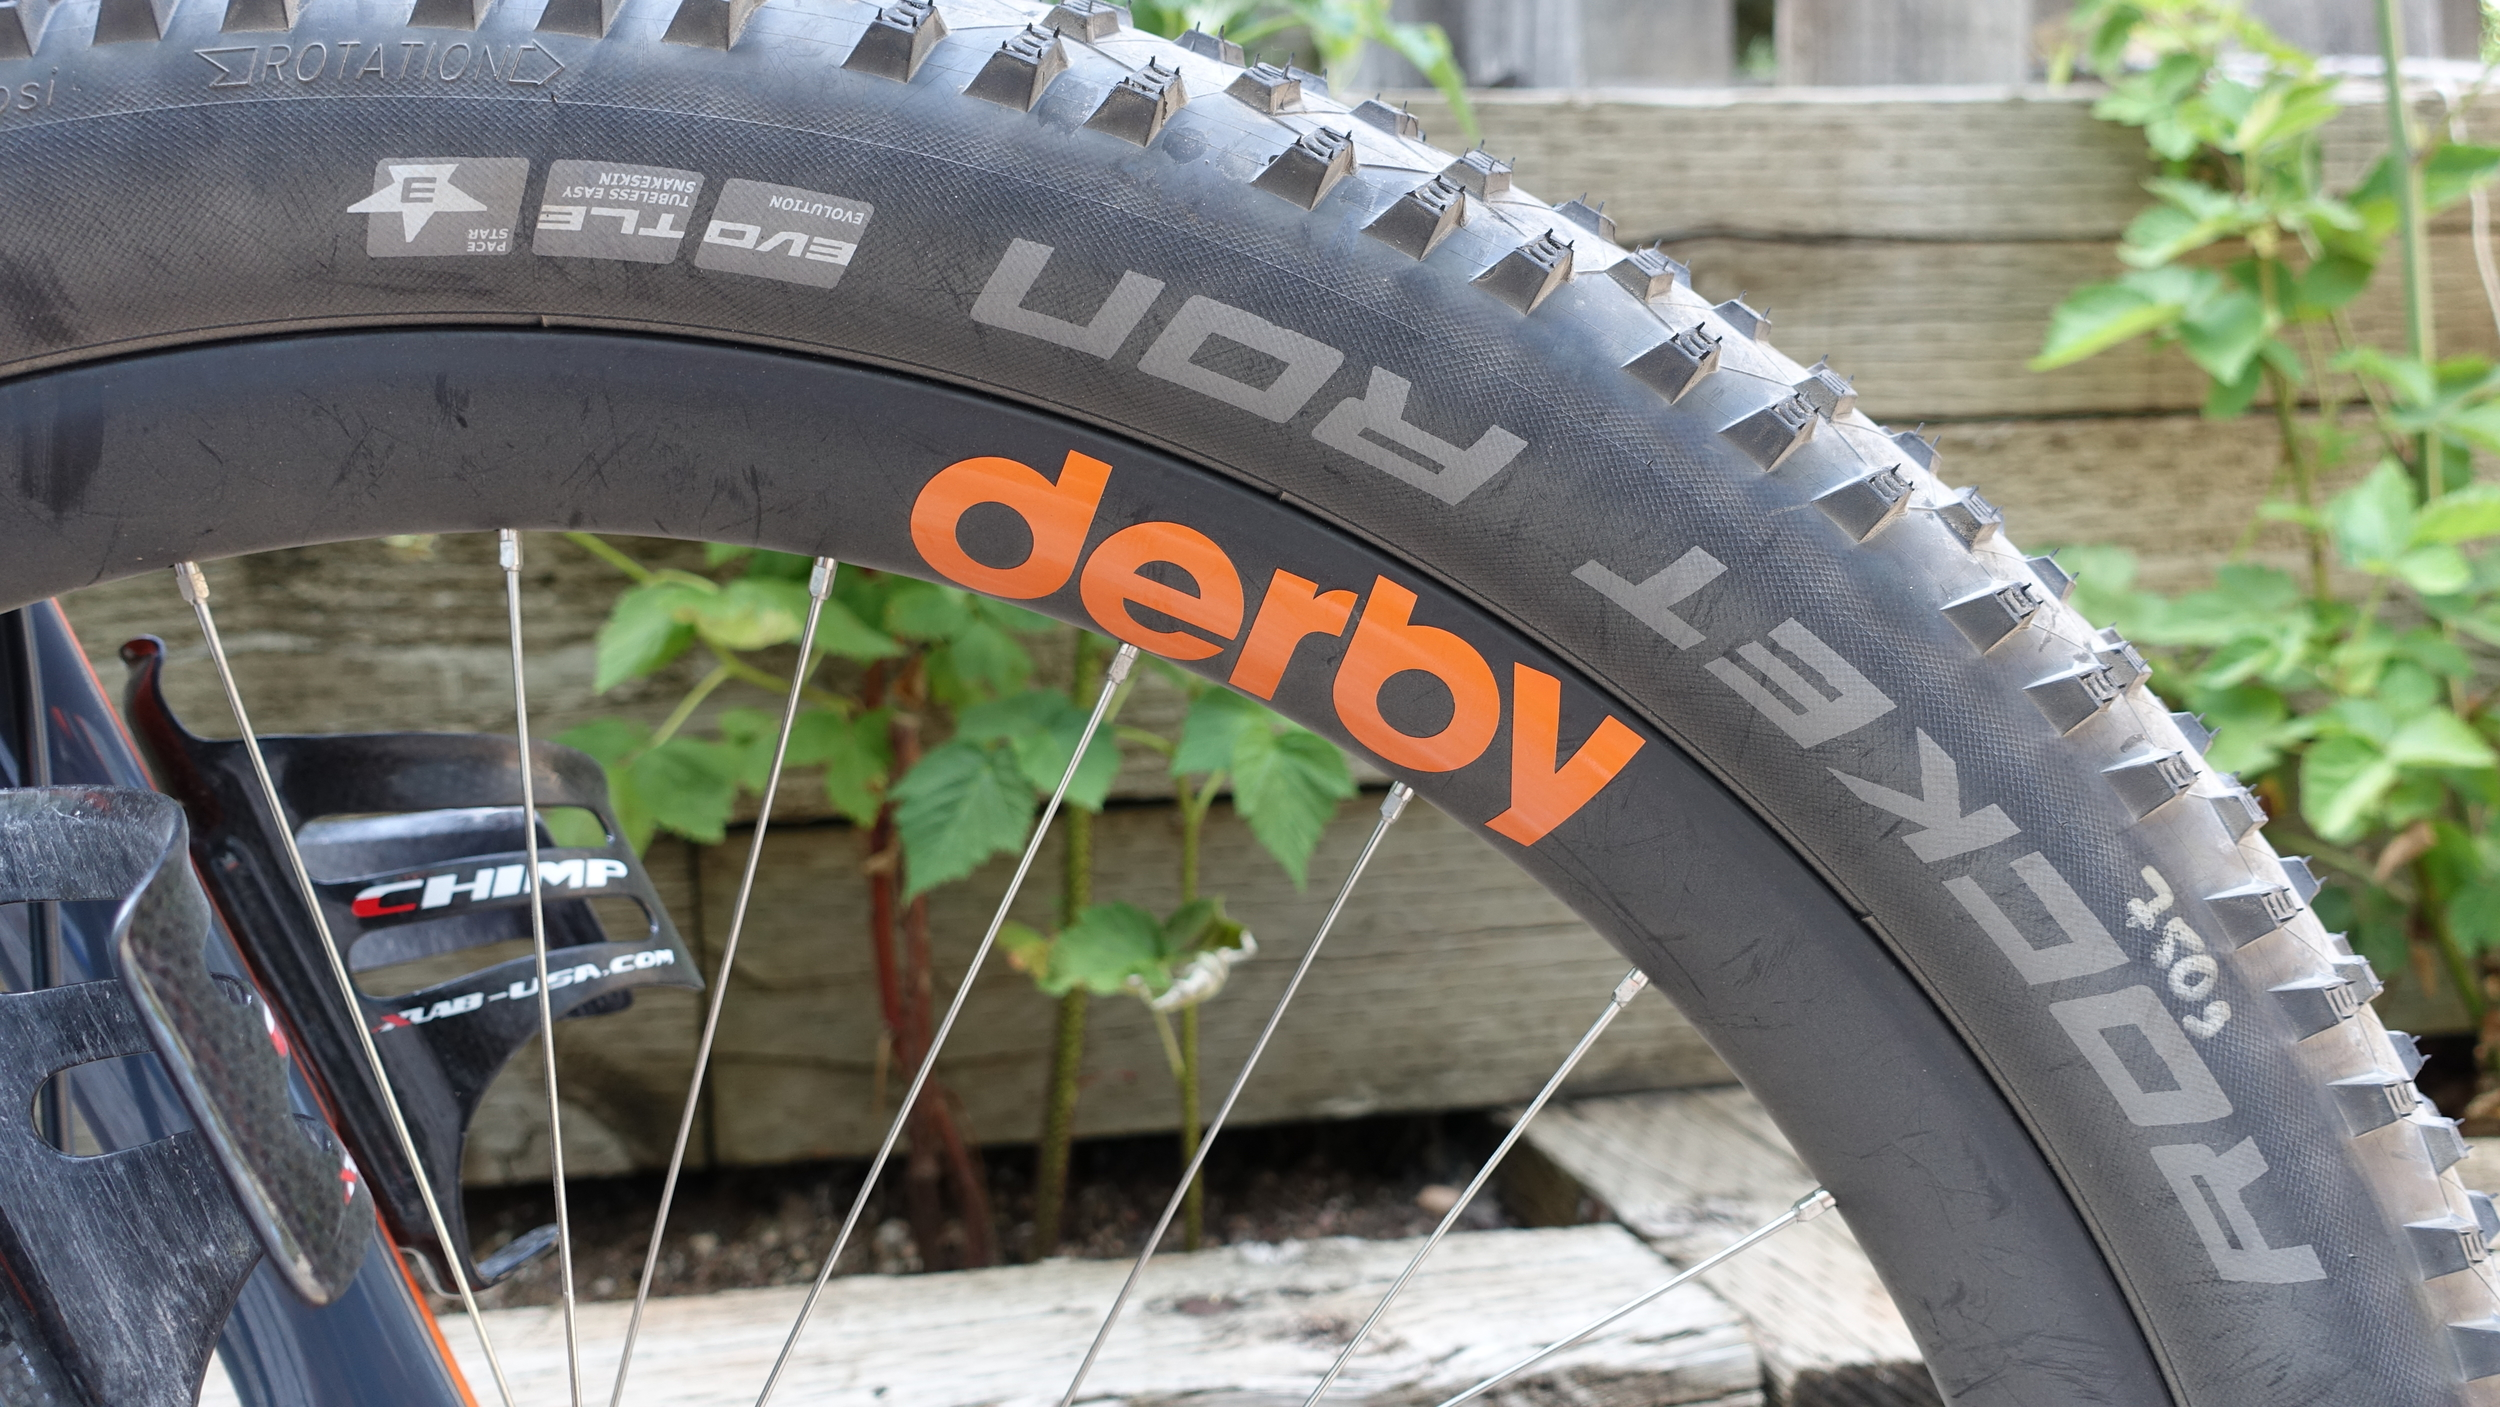 Derby's wide 27.5 carbon rims are fantastic. I loved building them and they work well with both 27.5 and 27.5+ tires.